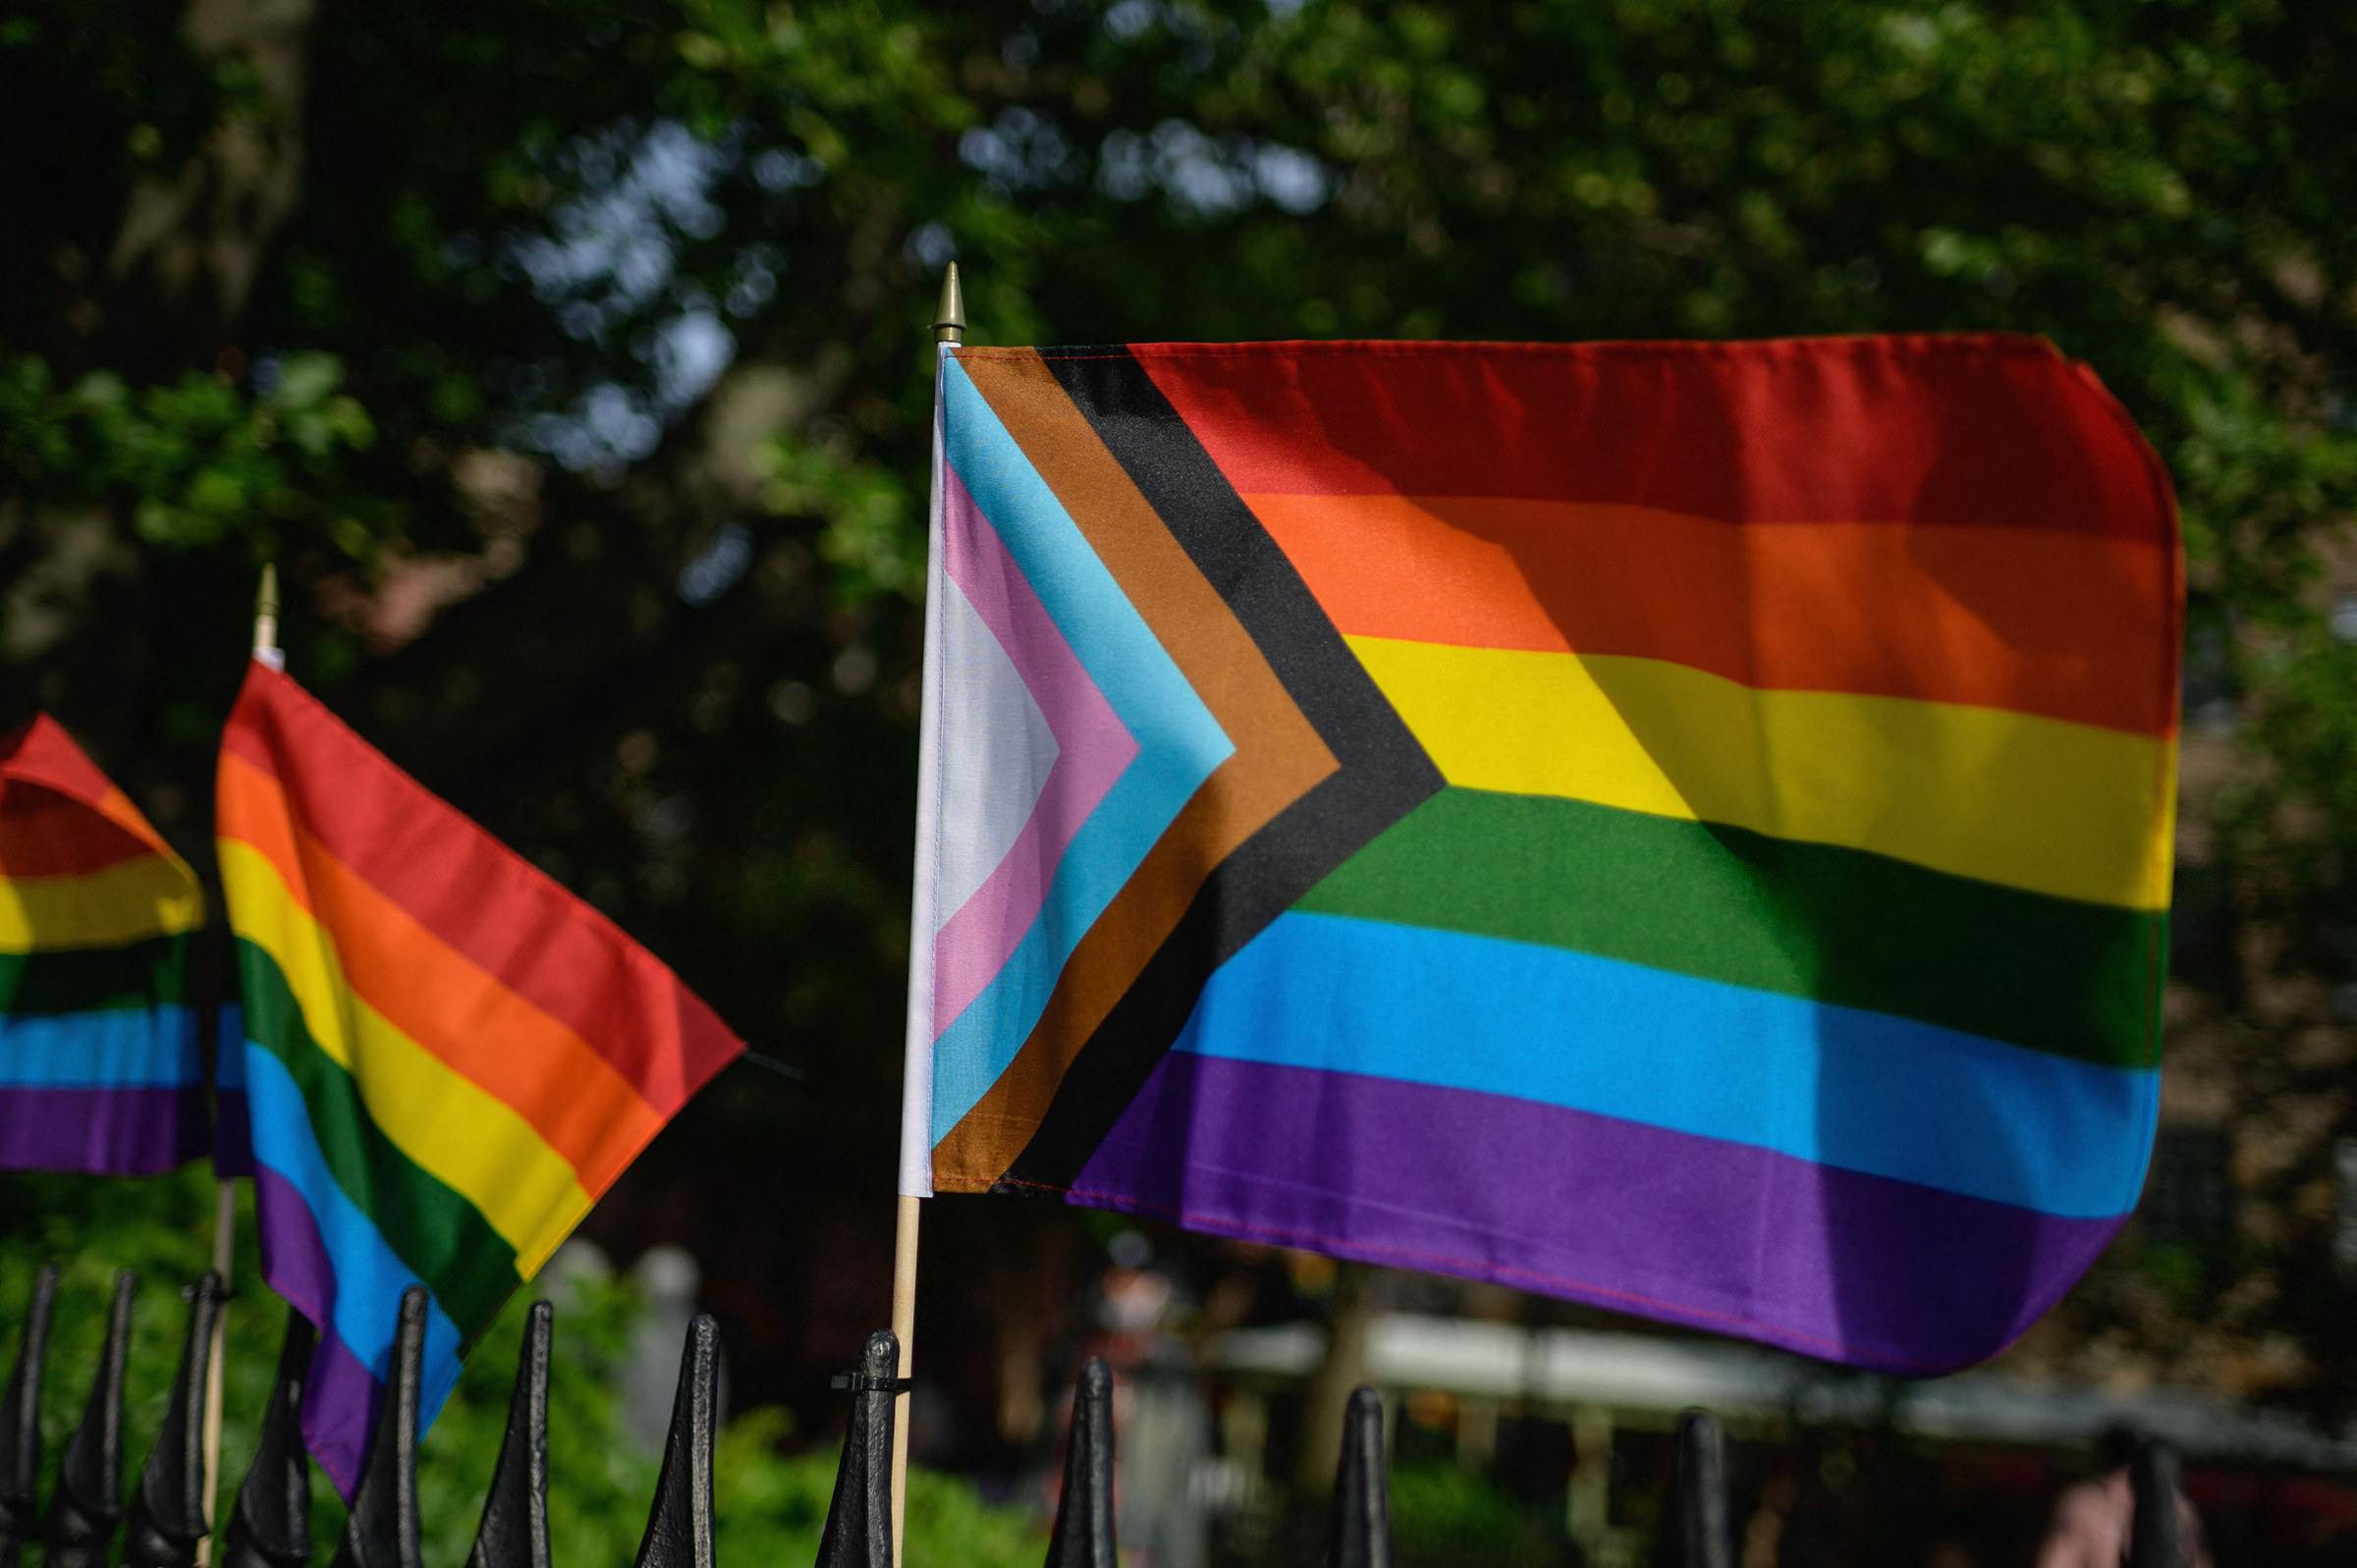 A Progress Pride flag alongside rainbow flags are seen at the Stonewall National Monument, the first US national monument dedicated to LGBTQ history and rights, on June 1, 2020 in New York City.